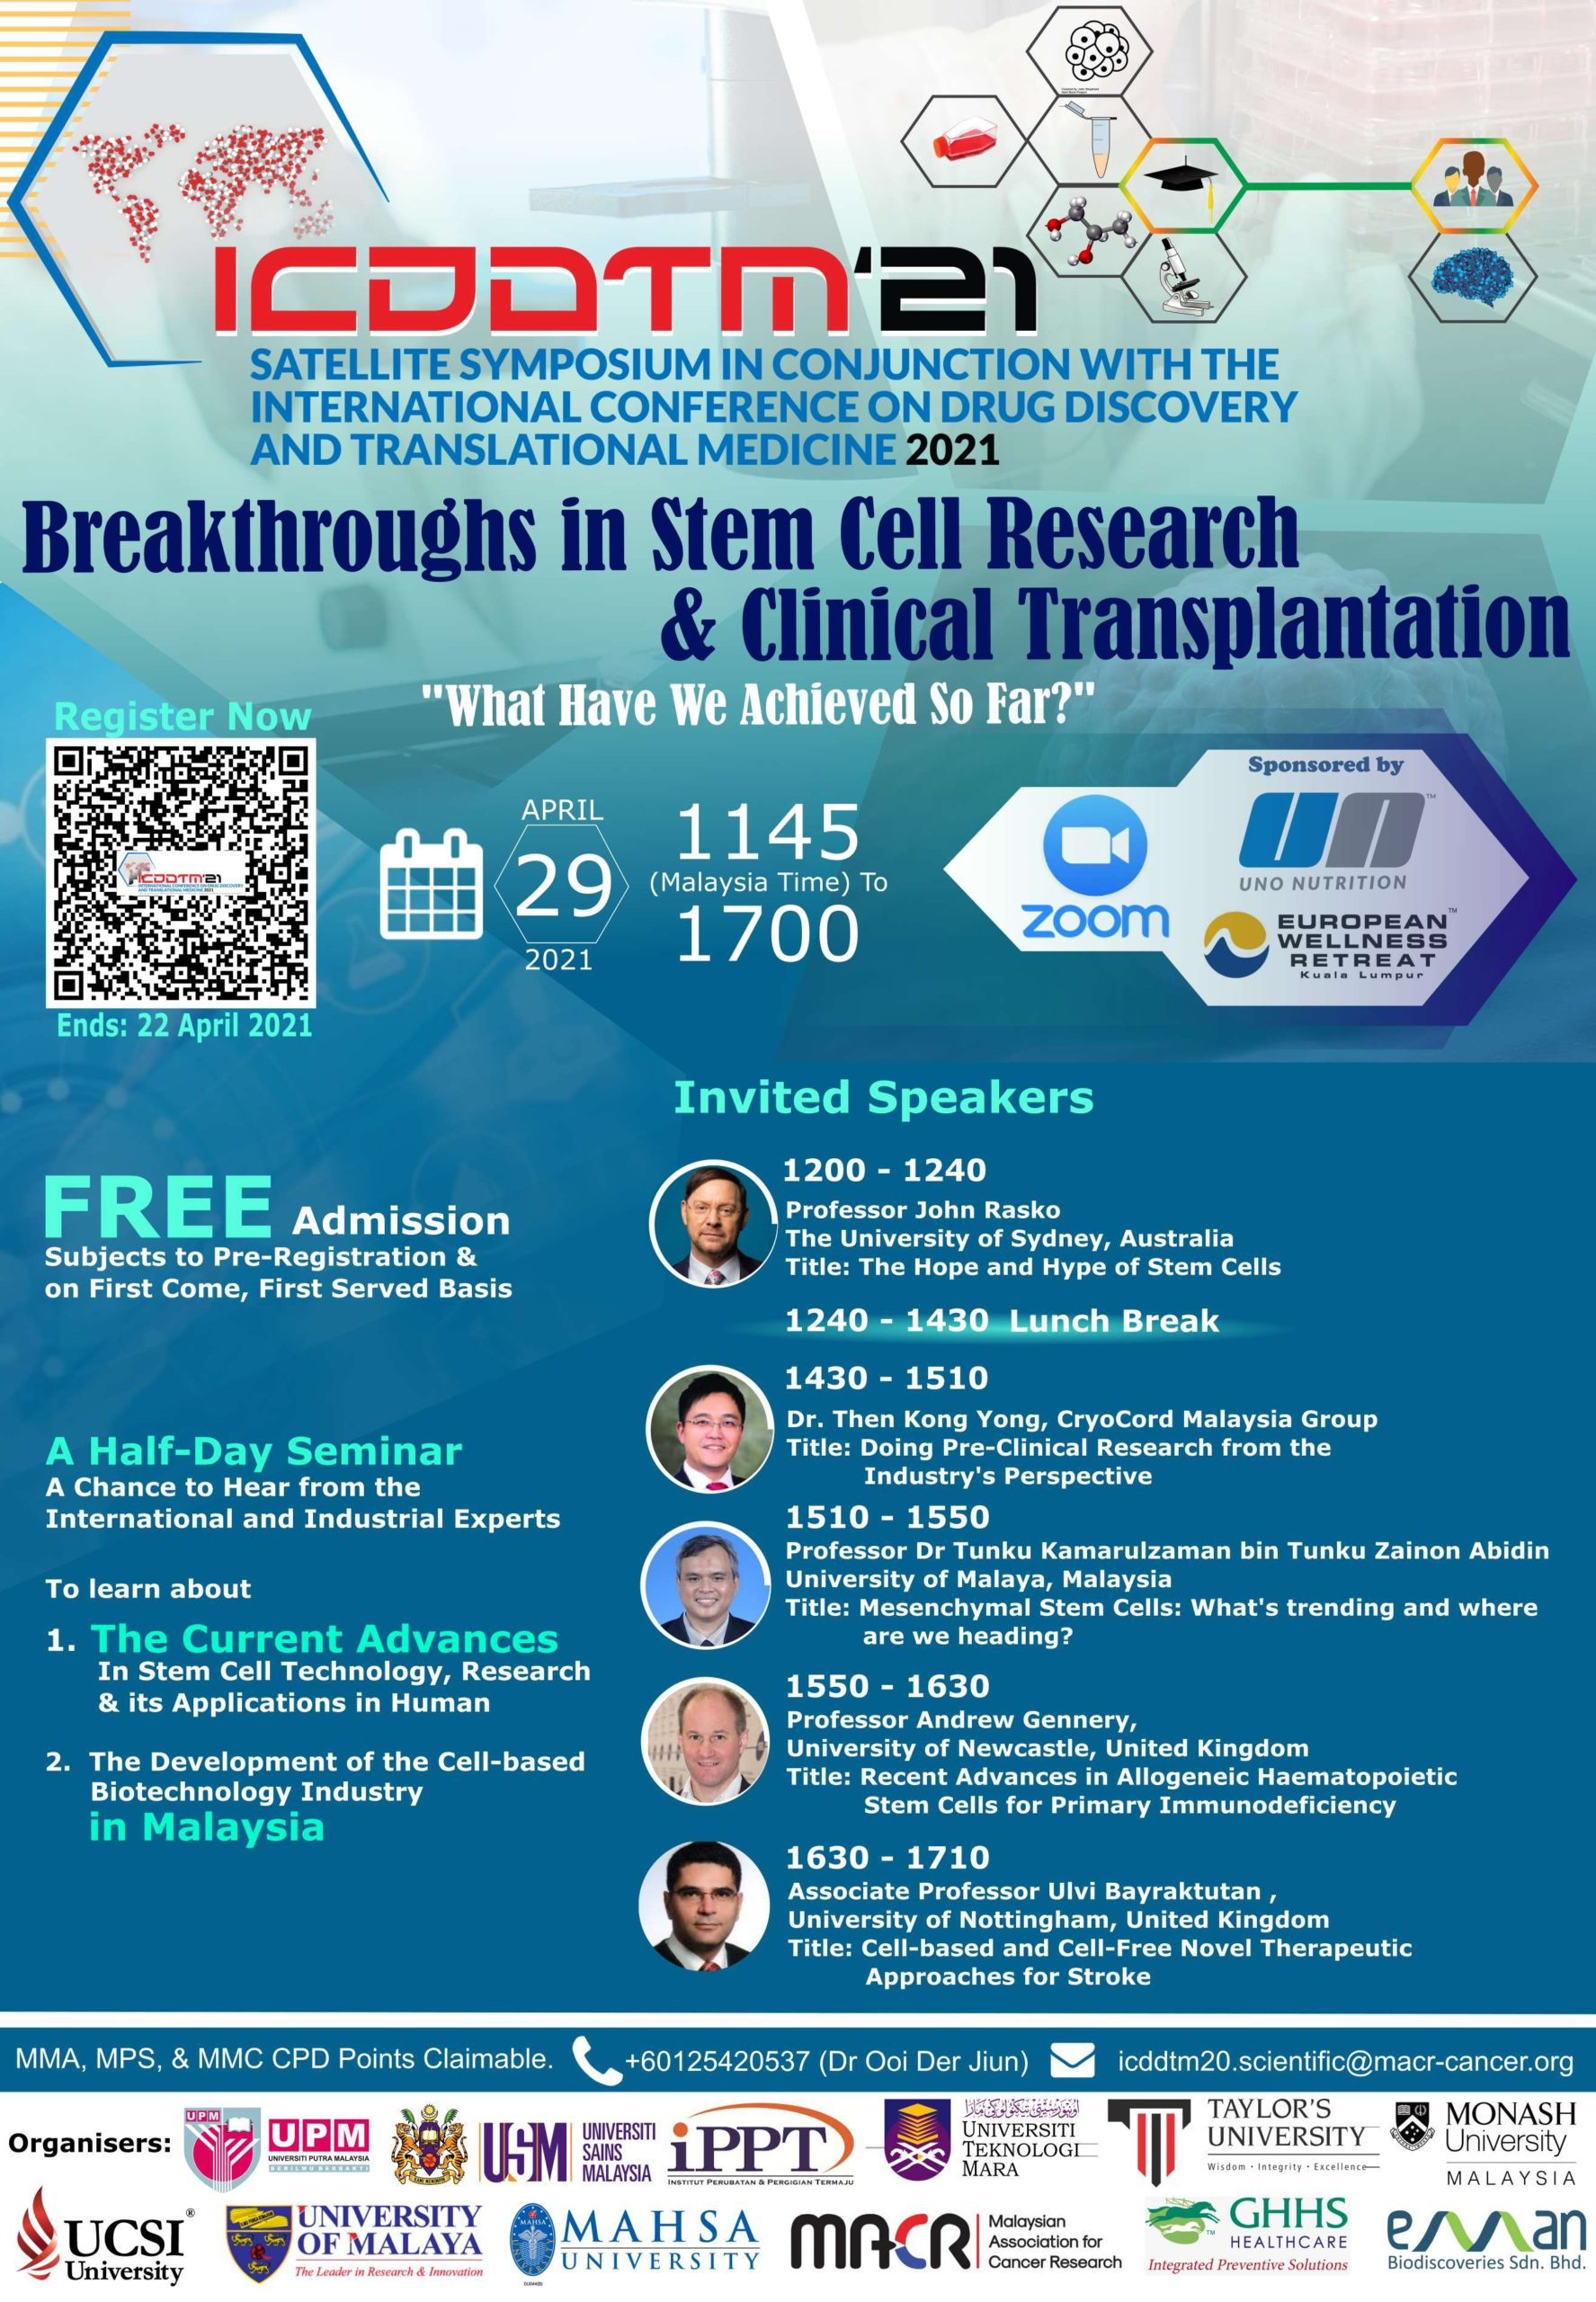 29th April 2021: Breakthrough in Stem Cell Research & Clinical Transplantation - What We Have Achieved So Far?